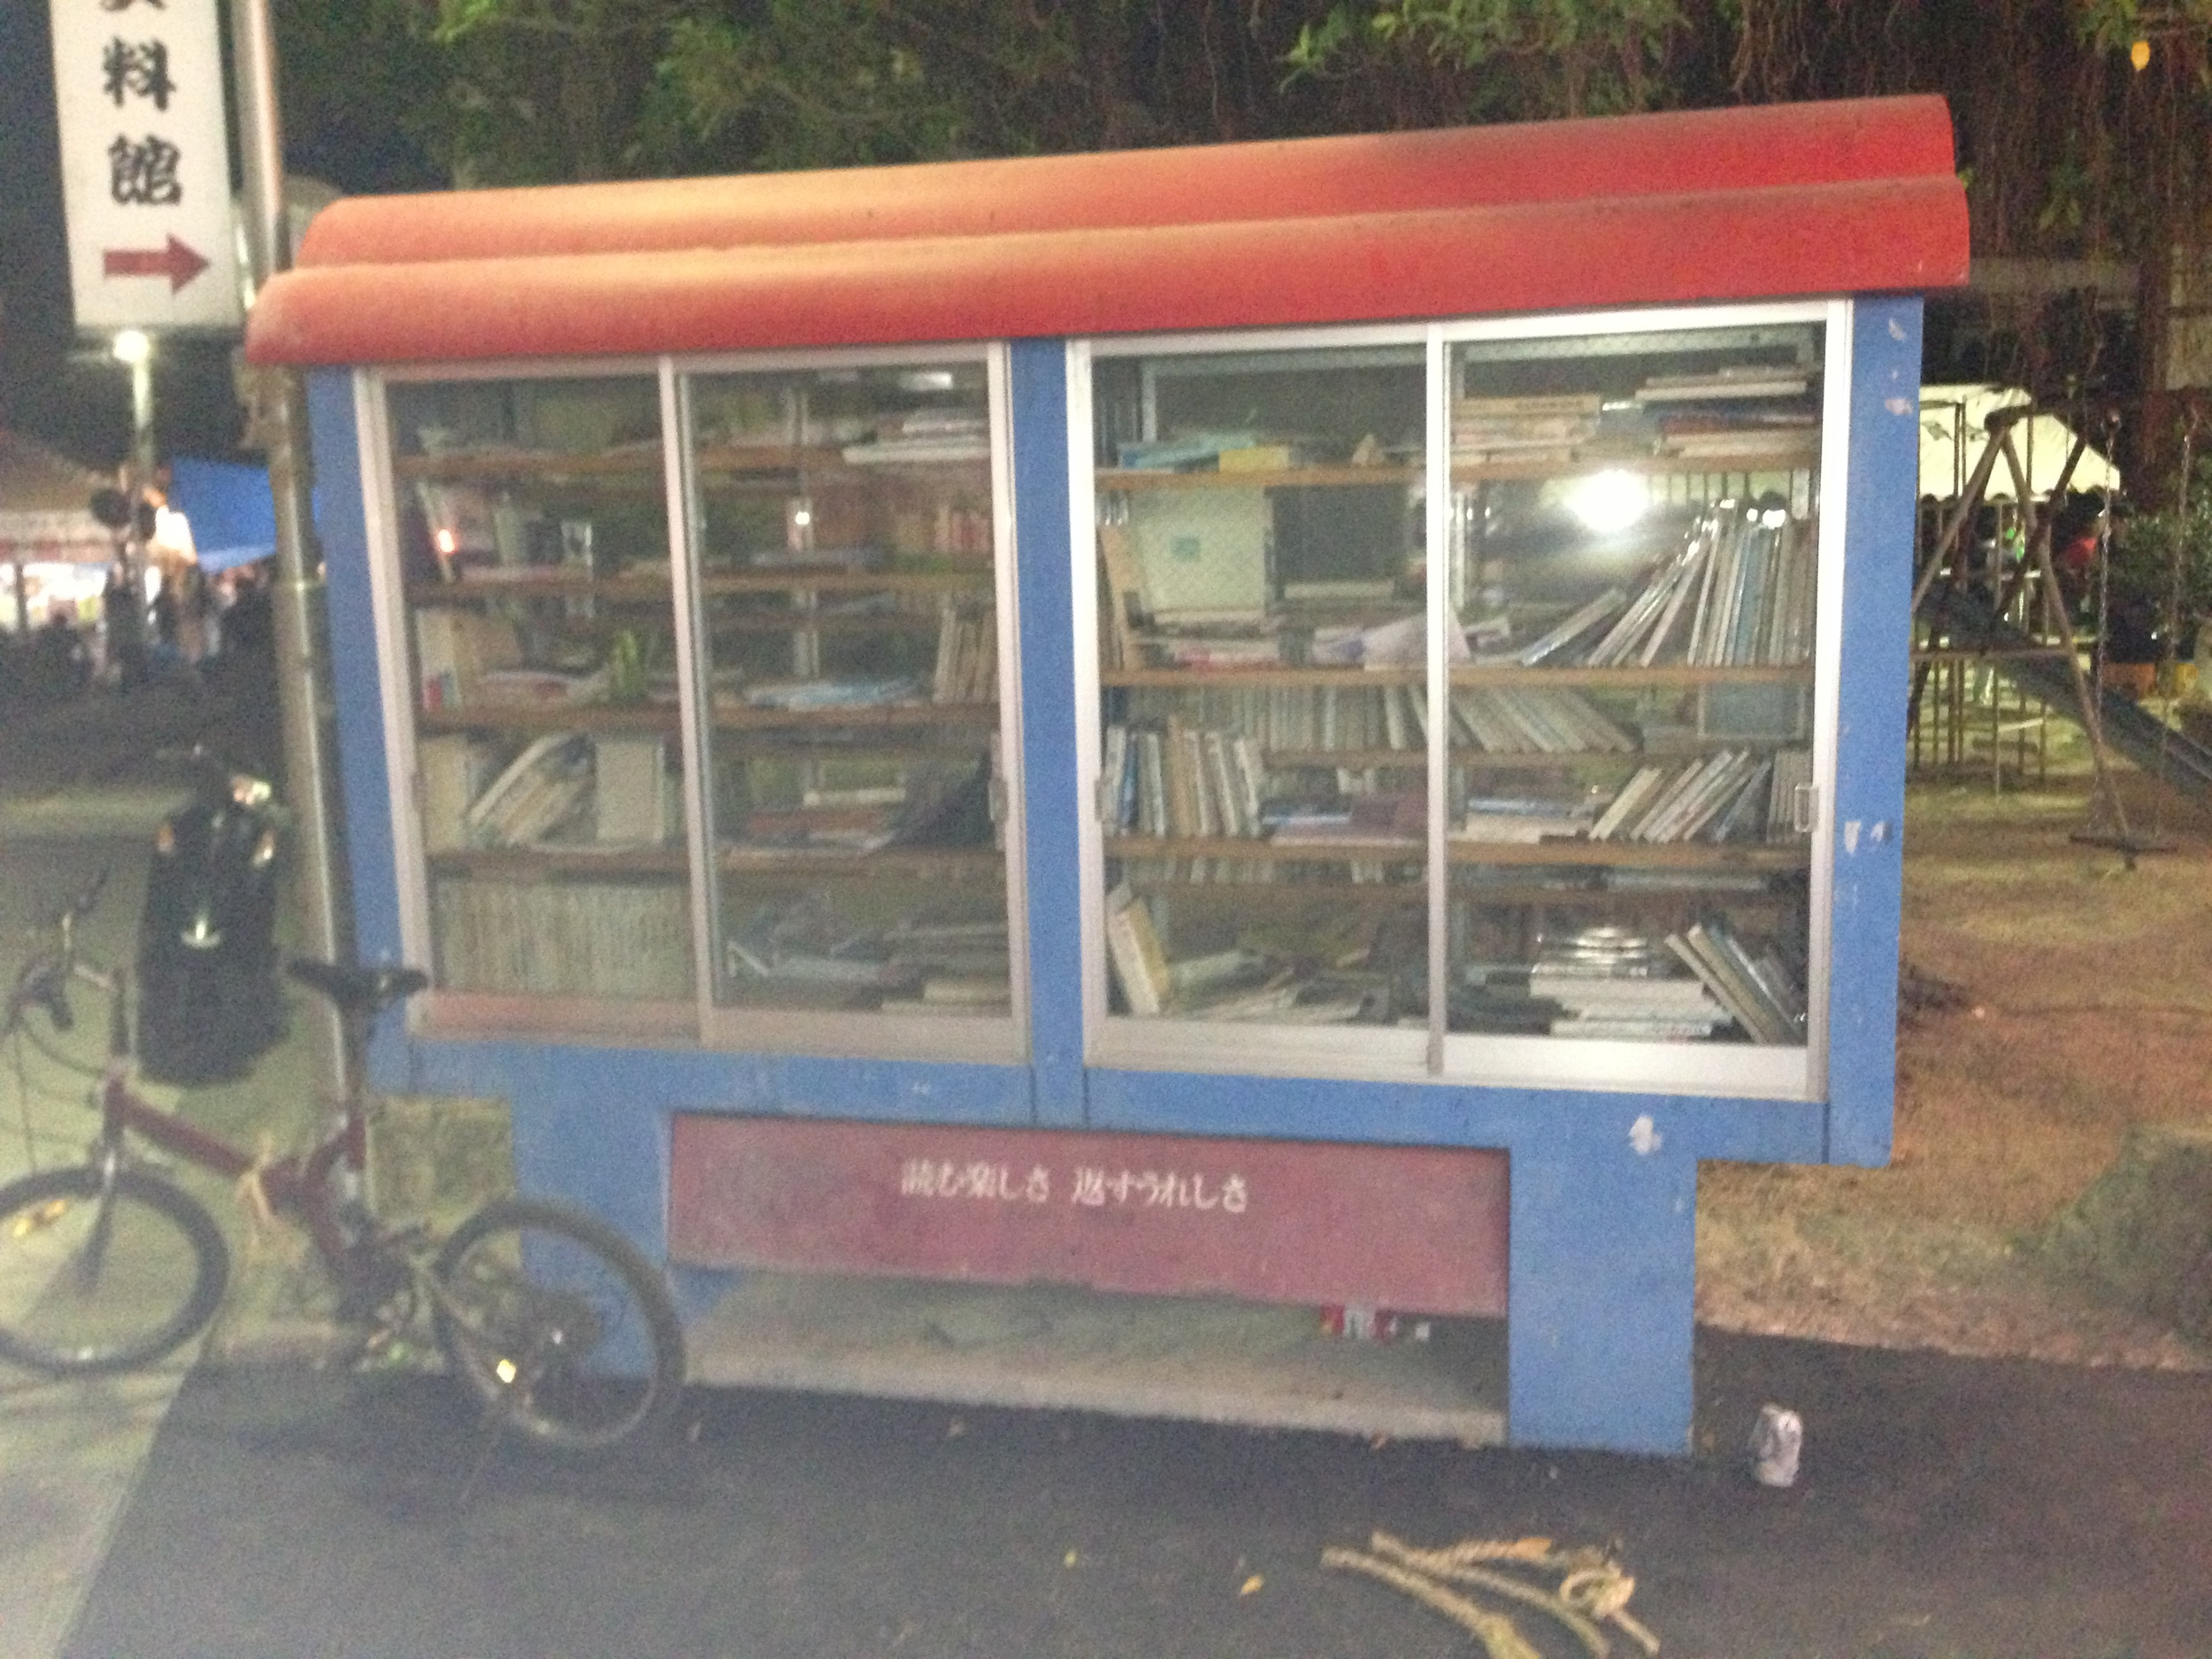 I read an article about these little mini-libraries in Japan and other countries, and I was so surprised and thrilled to come across one in Yonabaru!!! It's just a little cart-like thing that holds shelves, and the sliding doors aren't locked, so you can take and give books as you please. I'm lovin' it!!